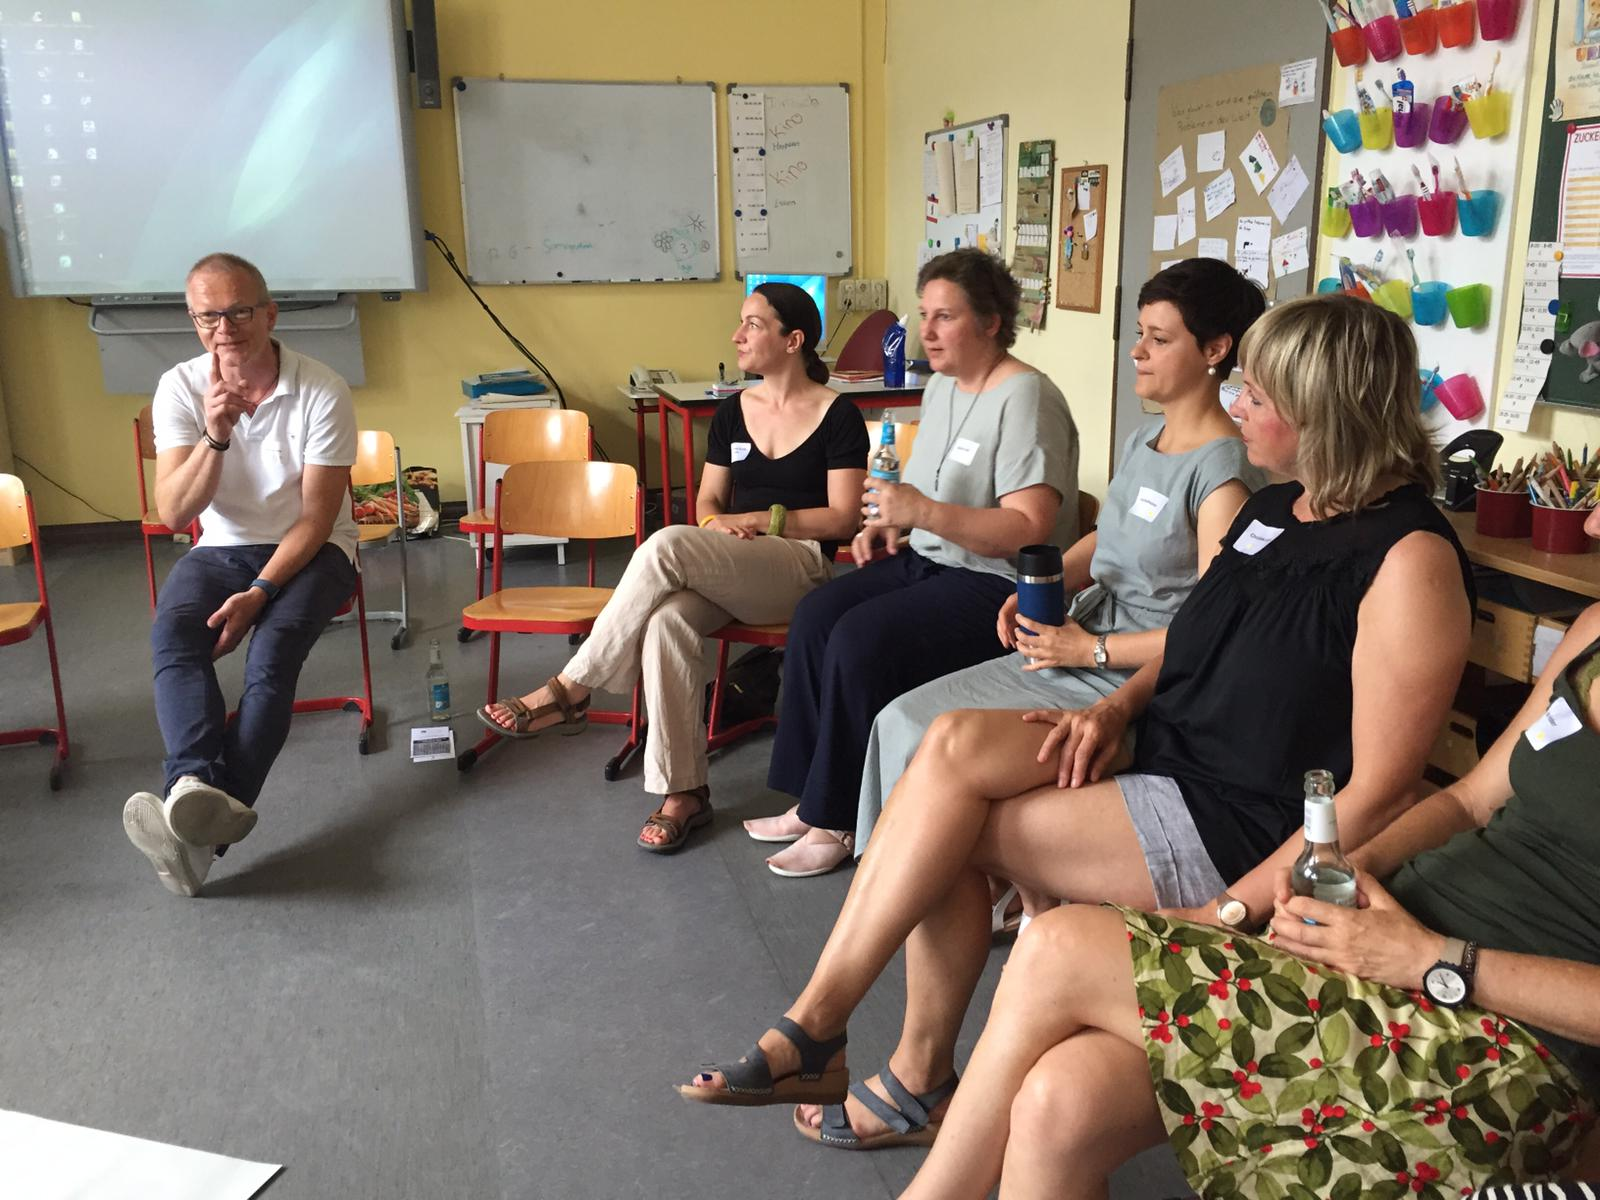 NVR OPEN SPACE MEETING IN BERLIN AM 15.-16.06.2019